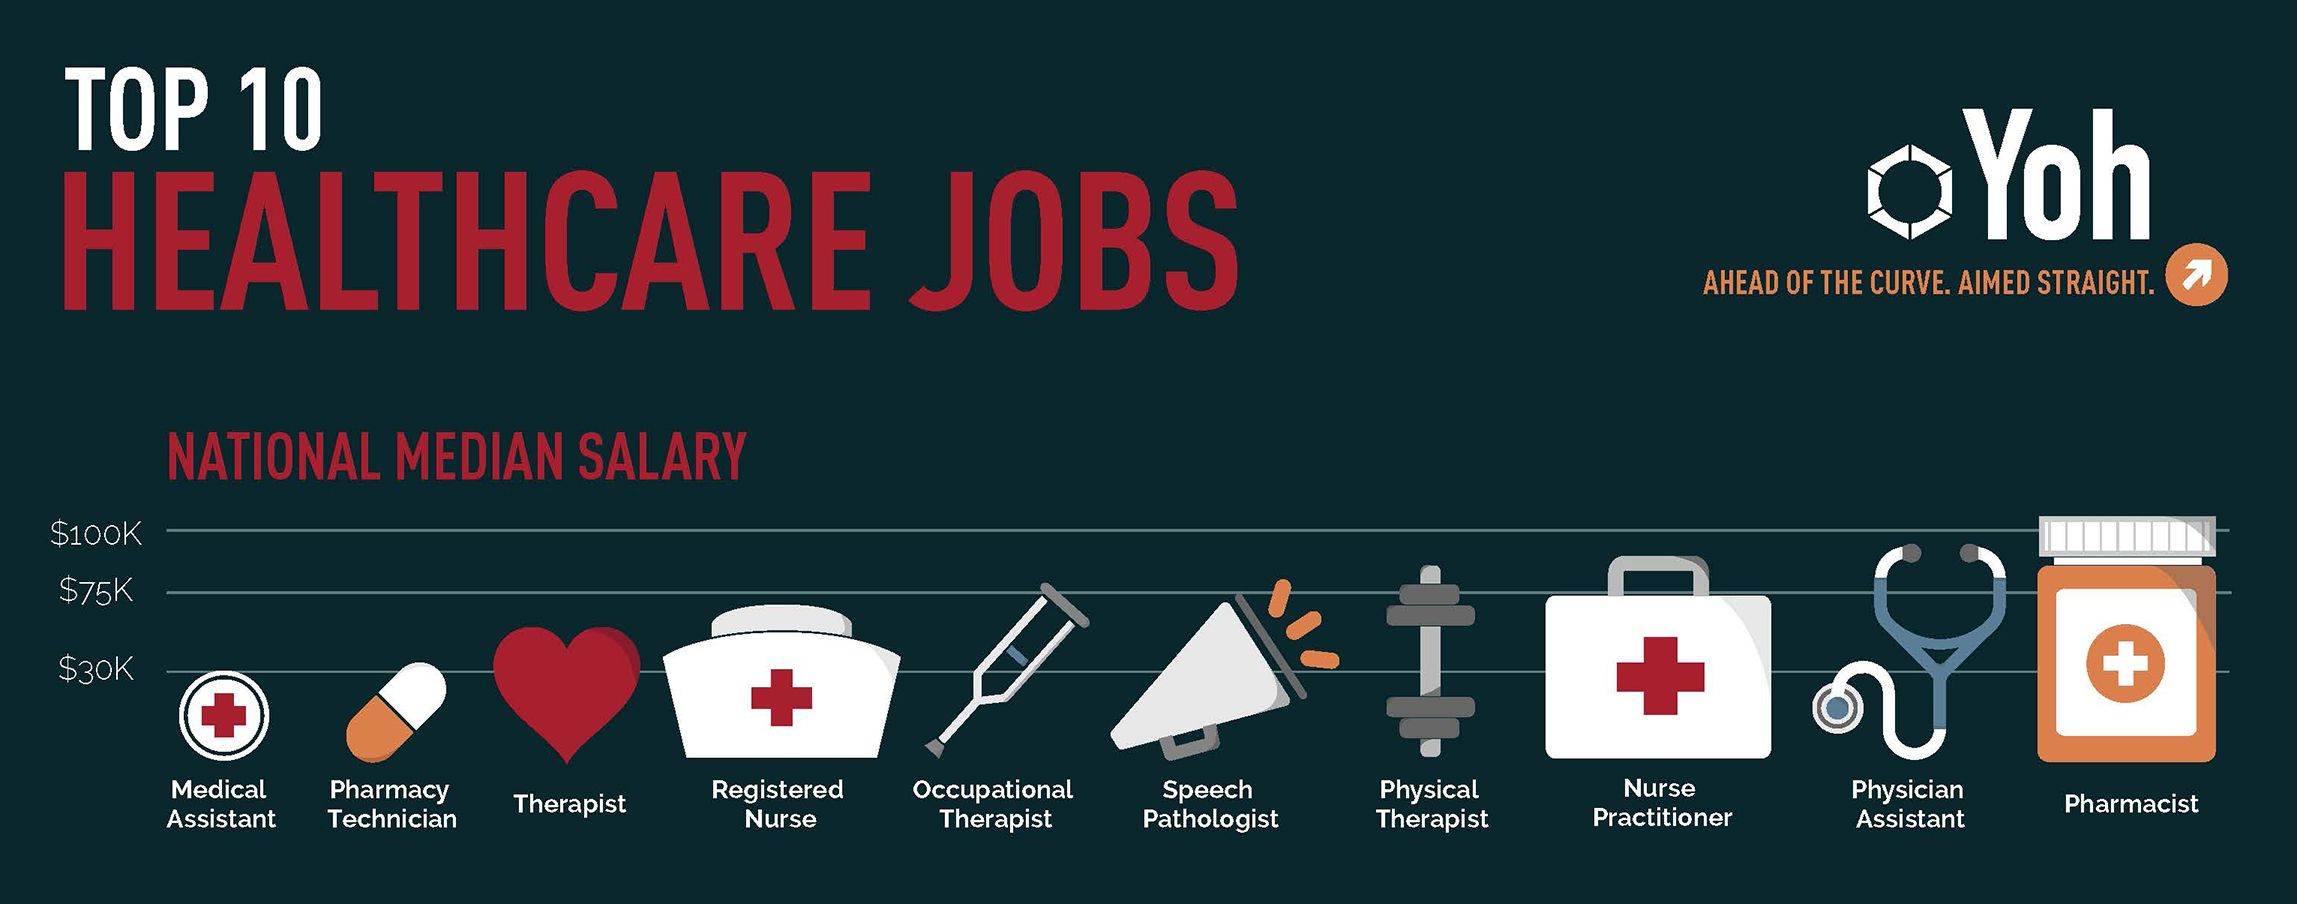 Top 10 Healthcare Jobs Infographic Healthcare Jobs Health Care Infographic